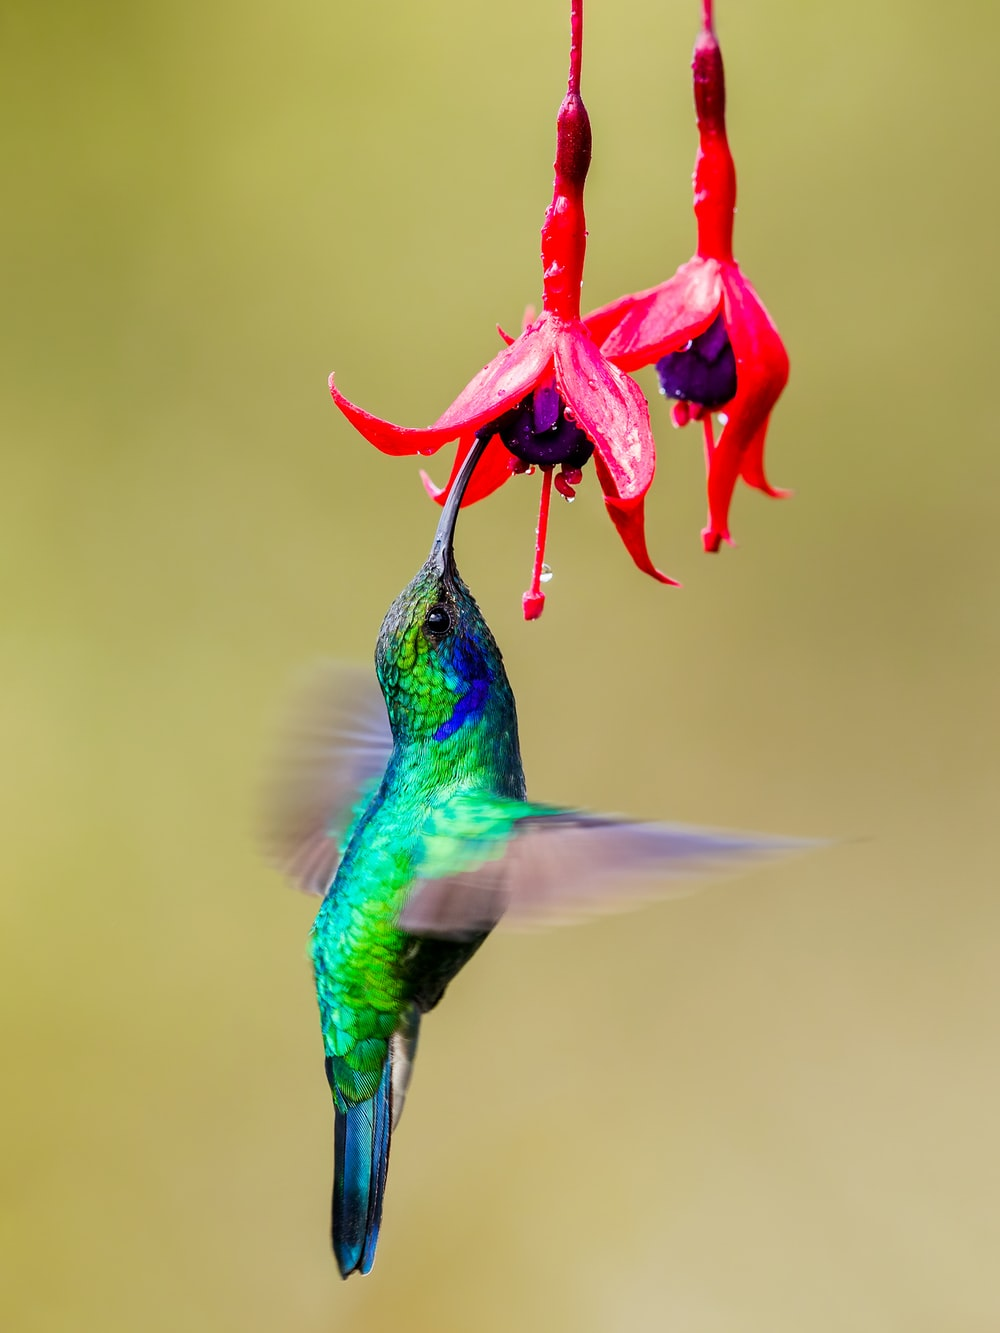 350+ Hummingbird Pictures [HD] | Download Free Images on Unsplash